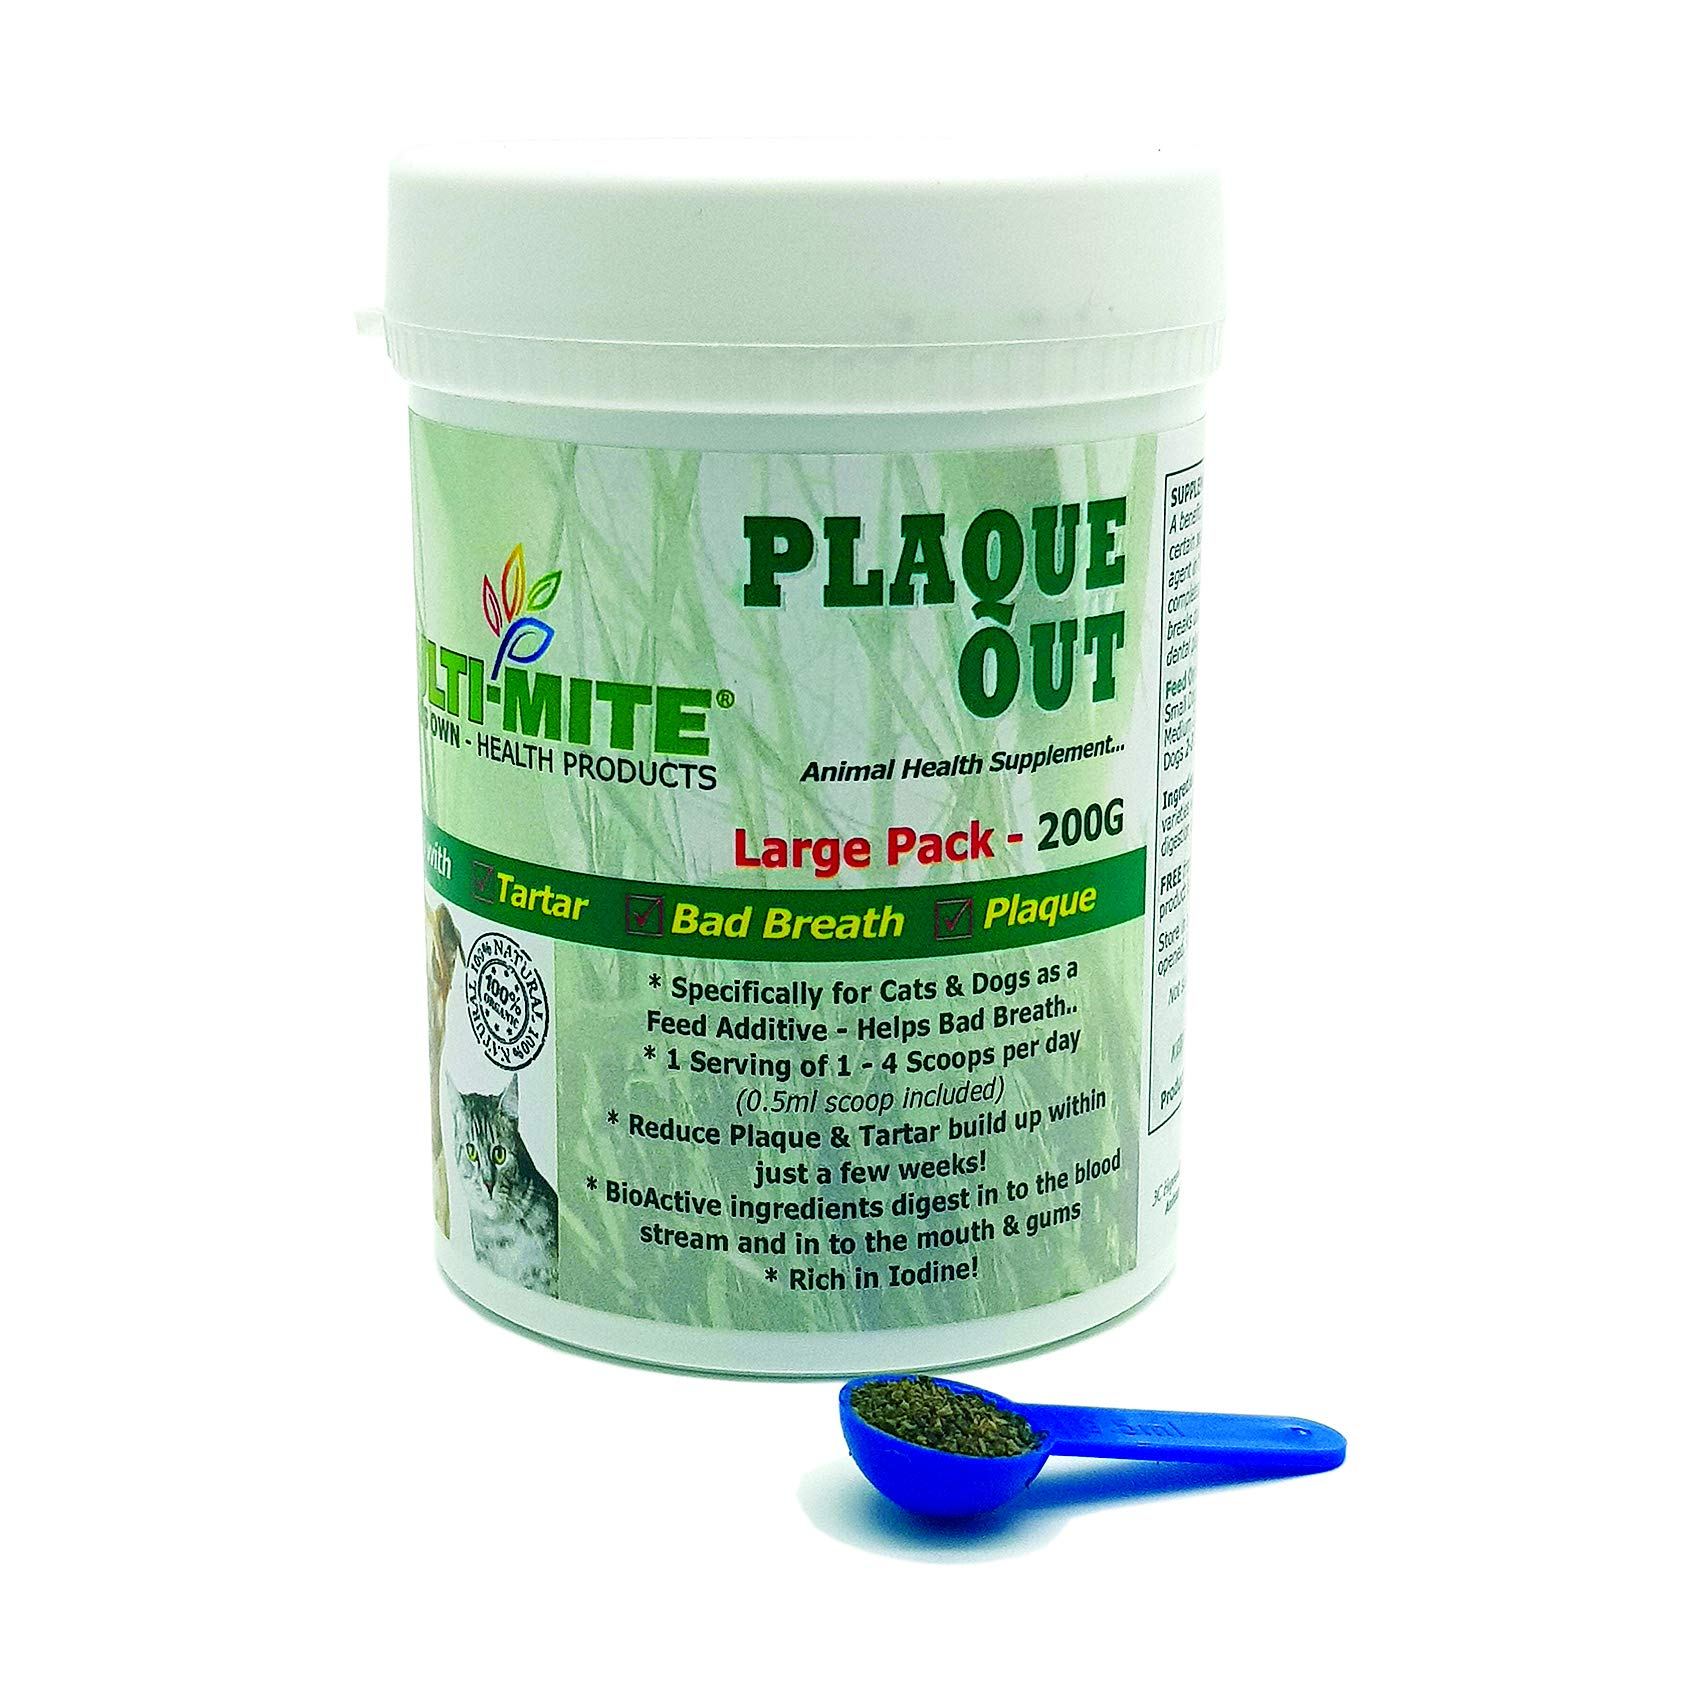 PLAQUE OUT® – Dog & Cat Plaque Off & Tartar Removal Large 200g PACK – Multi-Mite®